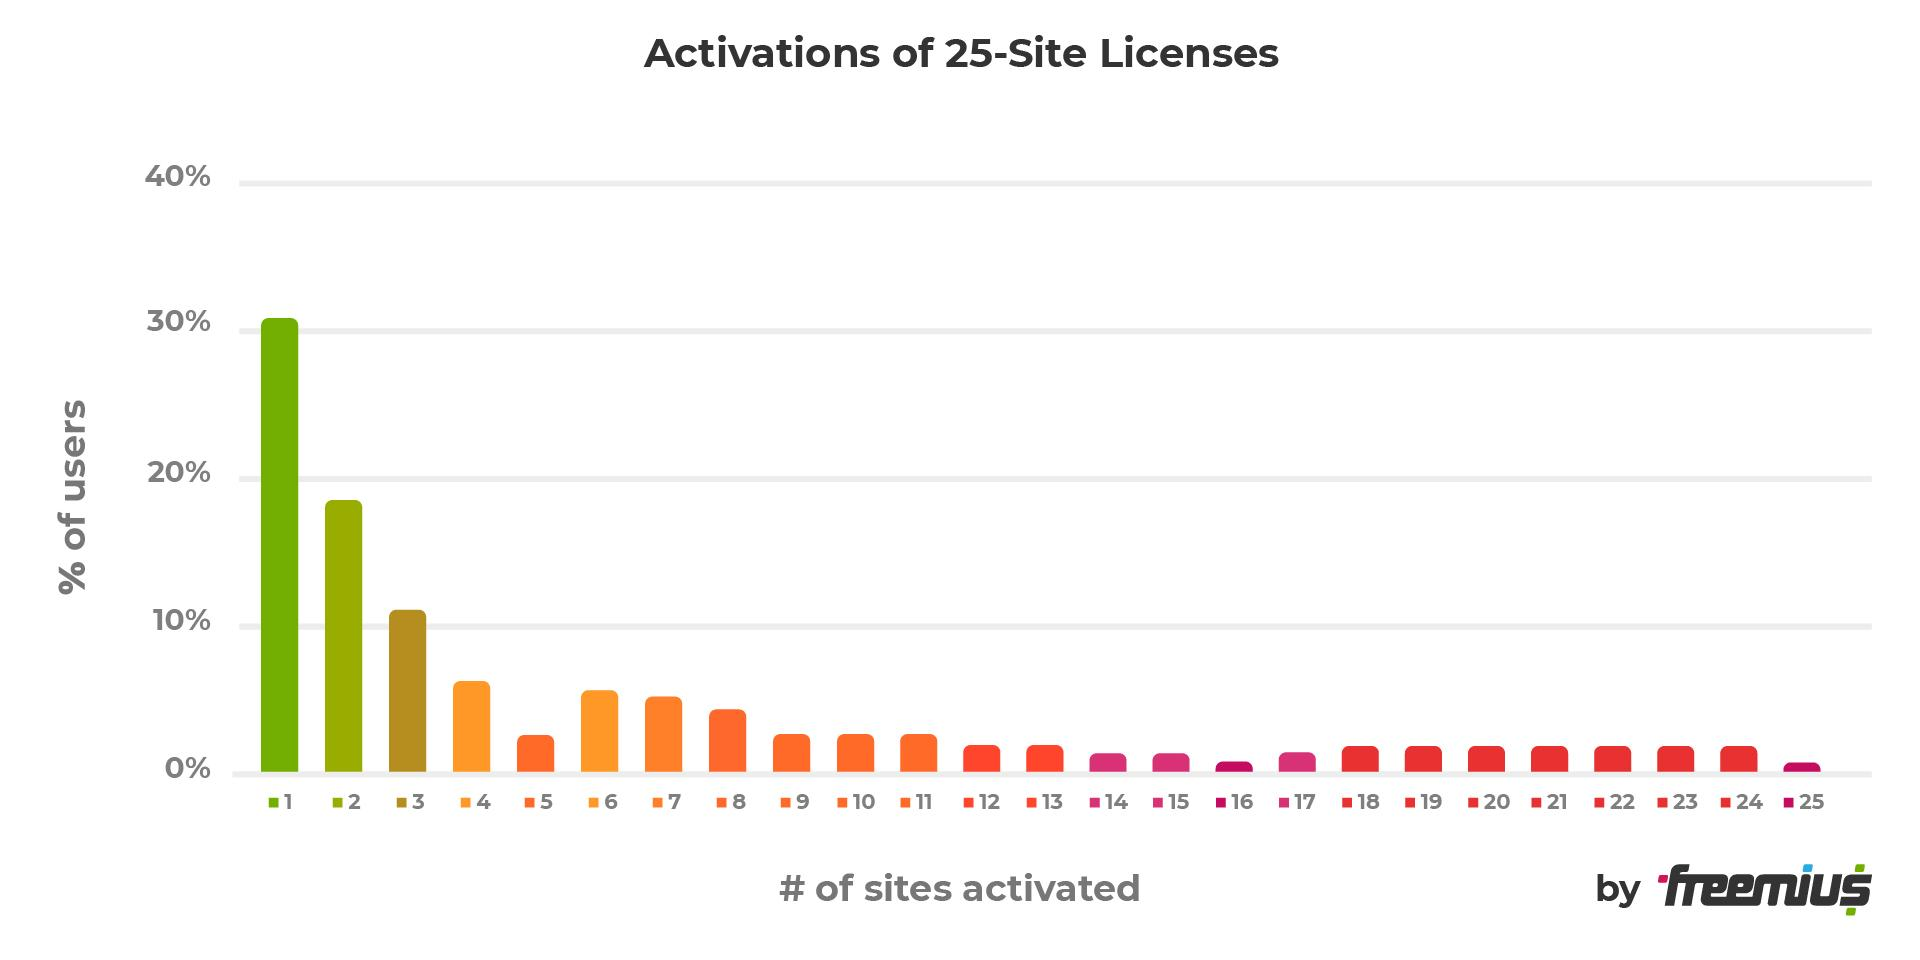 Activations of 25-site licenses